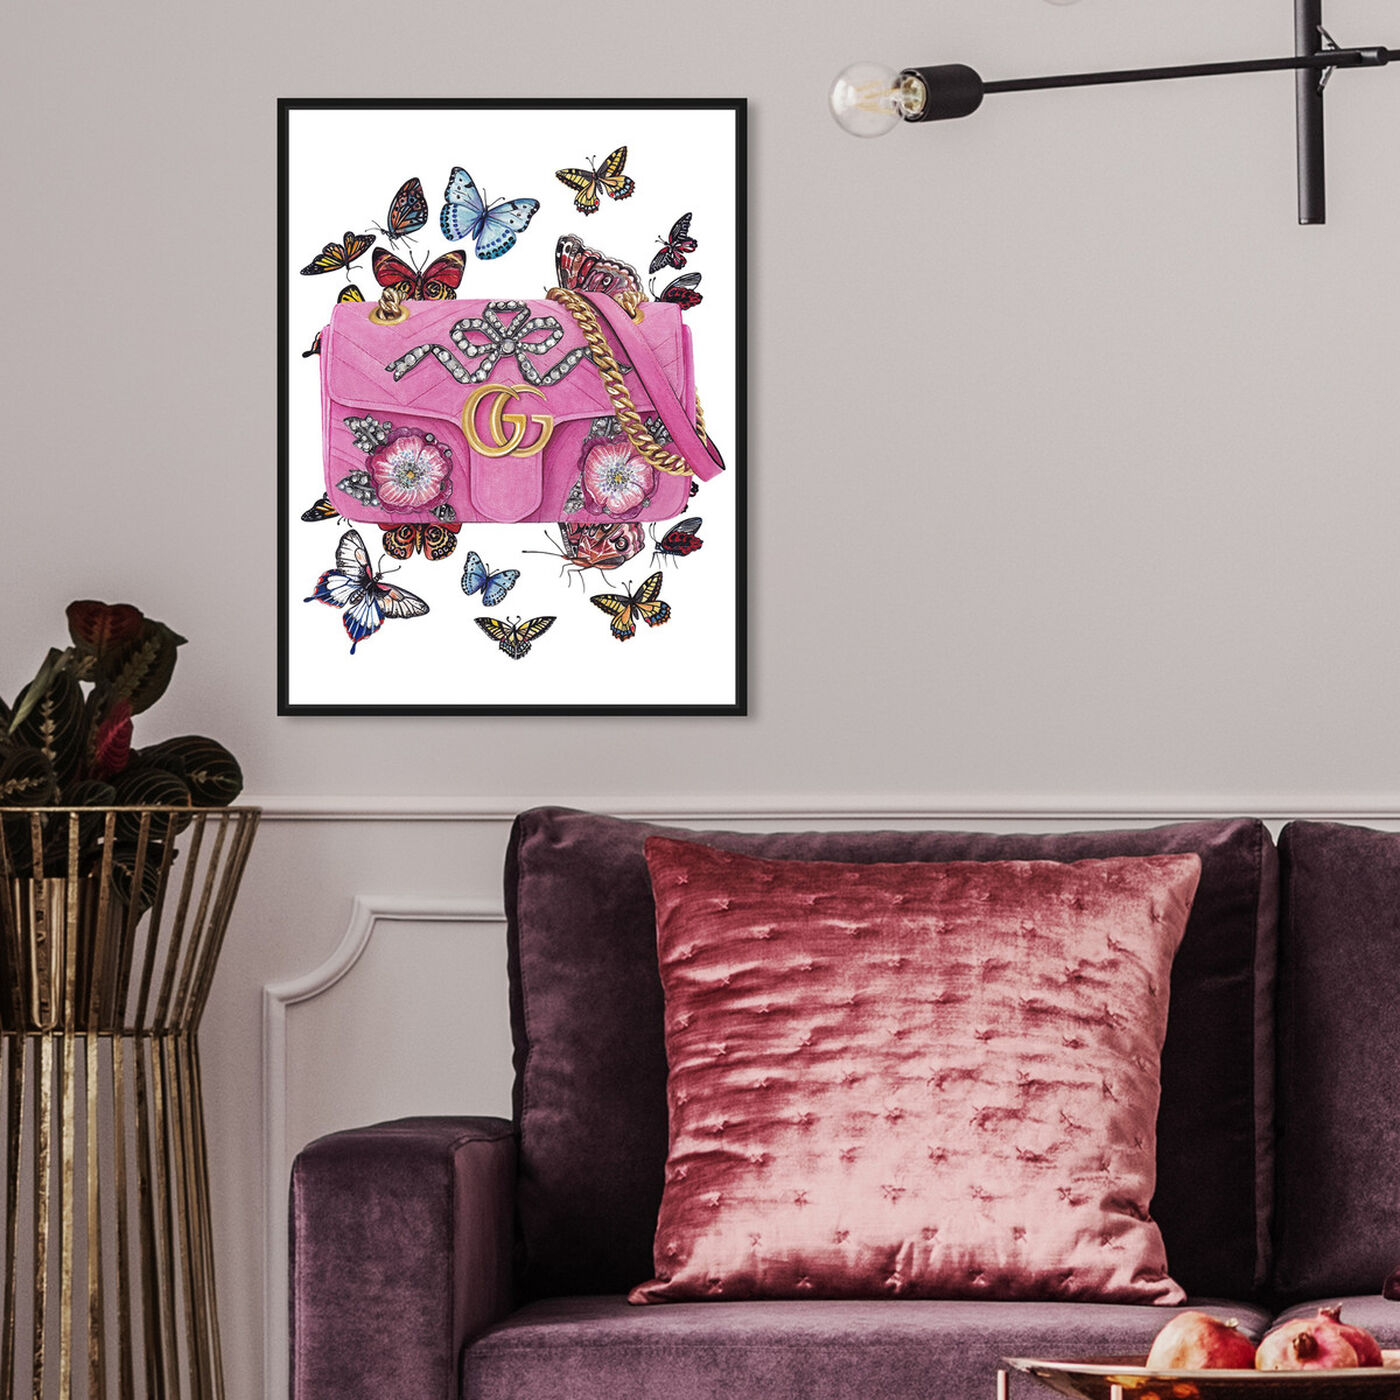 Hanging view of Doll Memories - Butterflies featuring fashion and glam and handbags art.